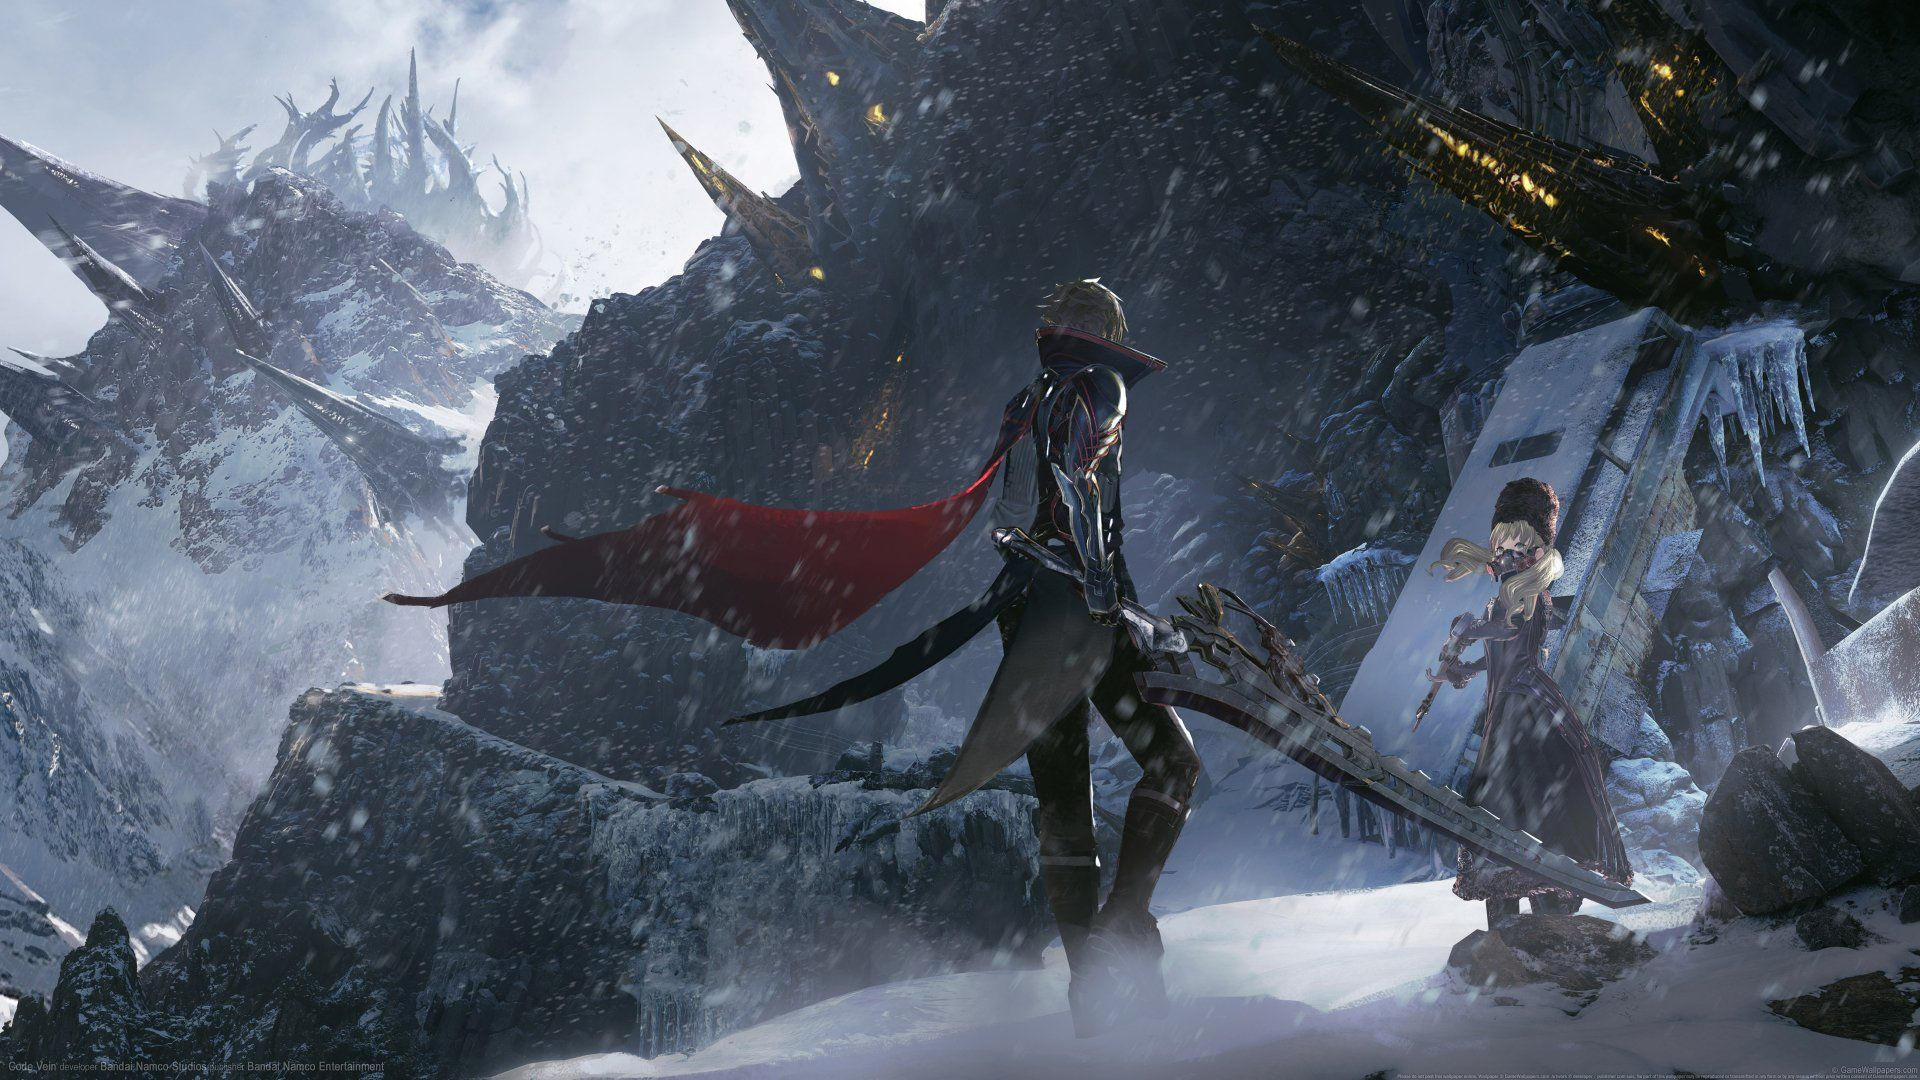 3840x2160 Code Vein Wallpaper Background Image View Download Comment And Rate Wallpaper Abyss Coding Veins Background Images